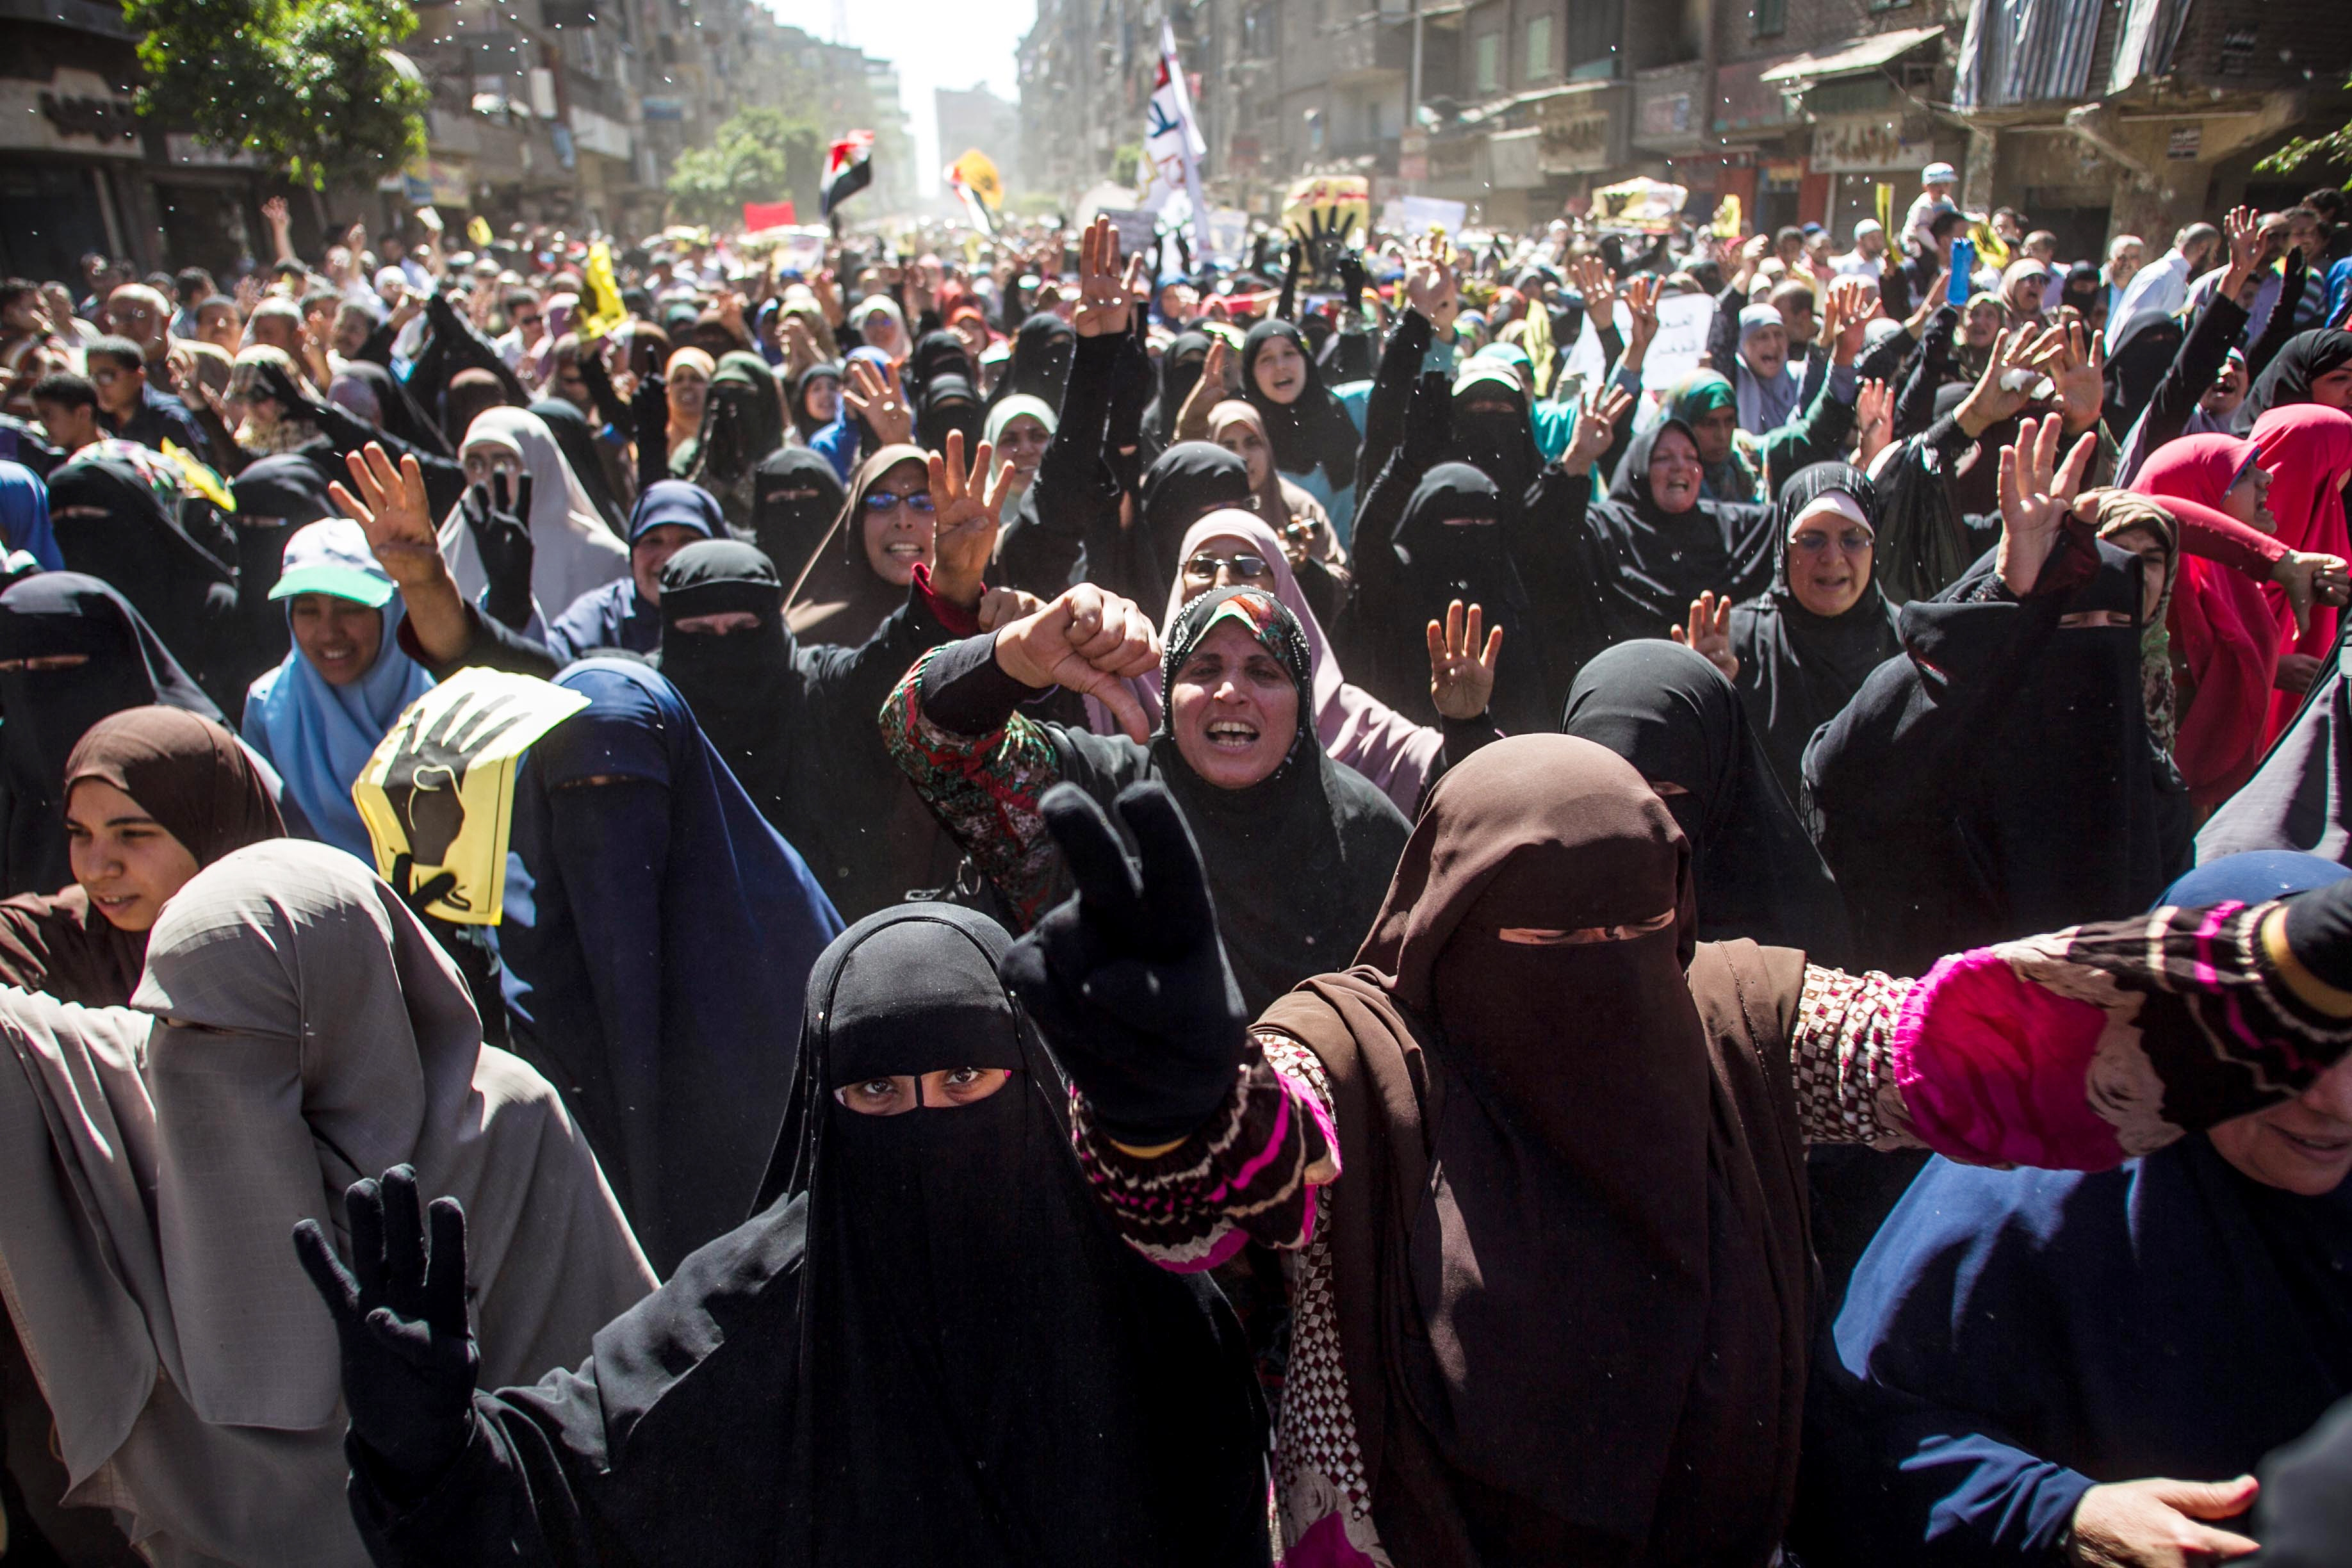 Supporters of Egypt's ousted President Mohamed Morsi protest the decision by former military chief Abdel-Fattah el-Sissi to run in the upcoming presidential election.